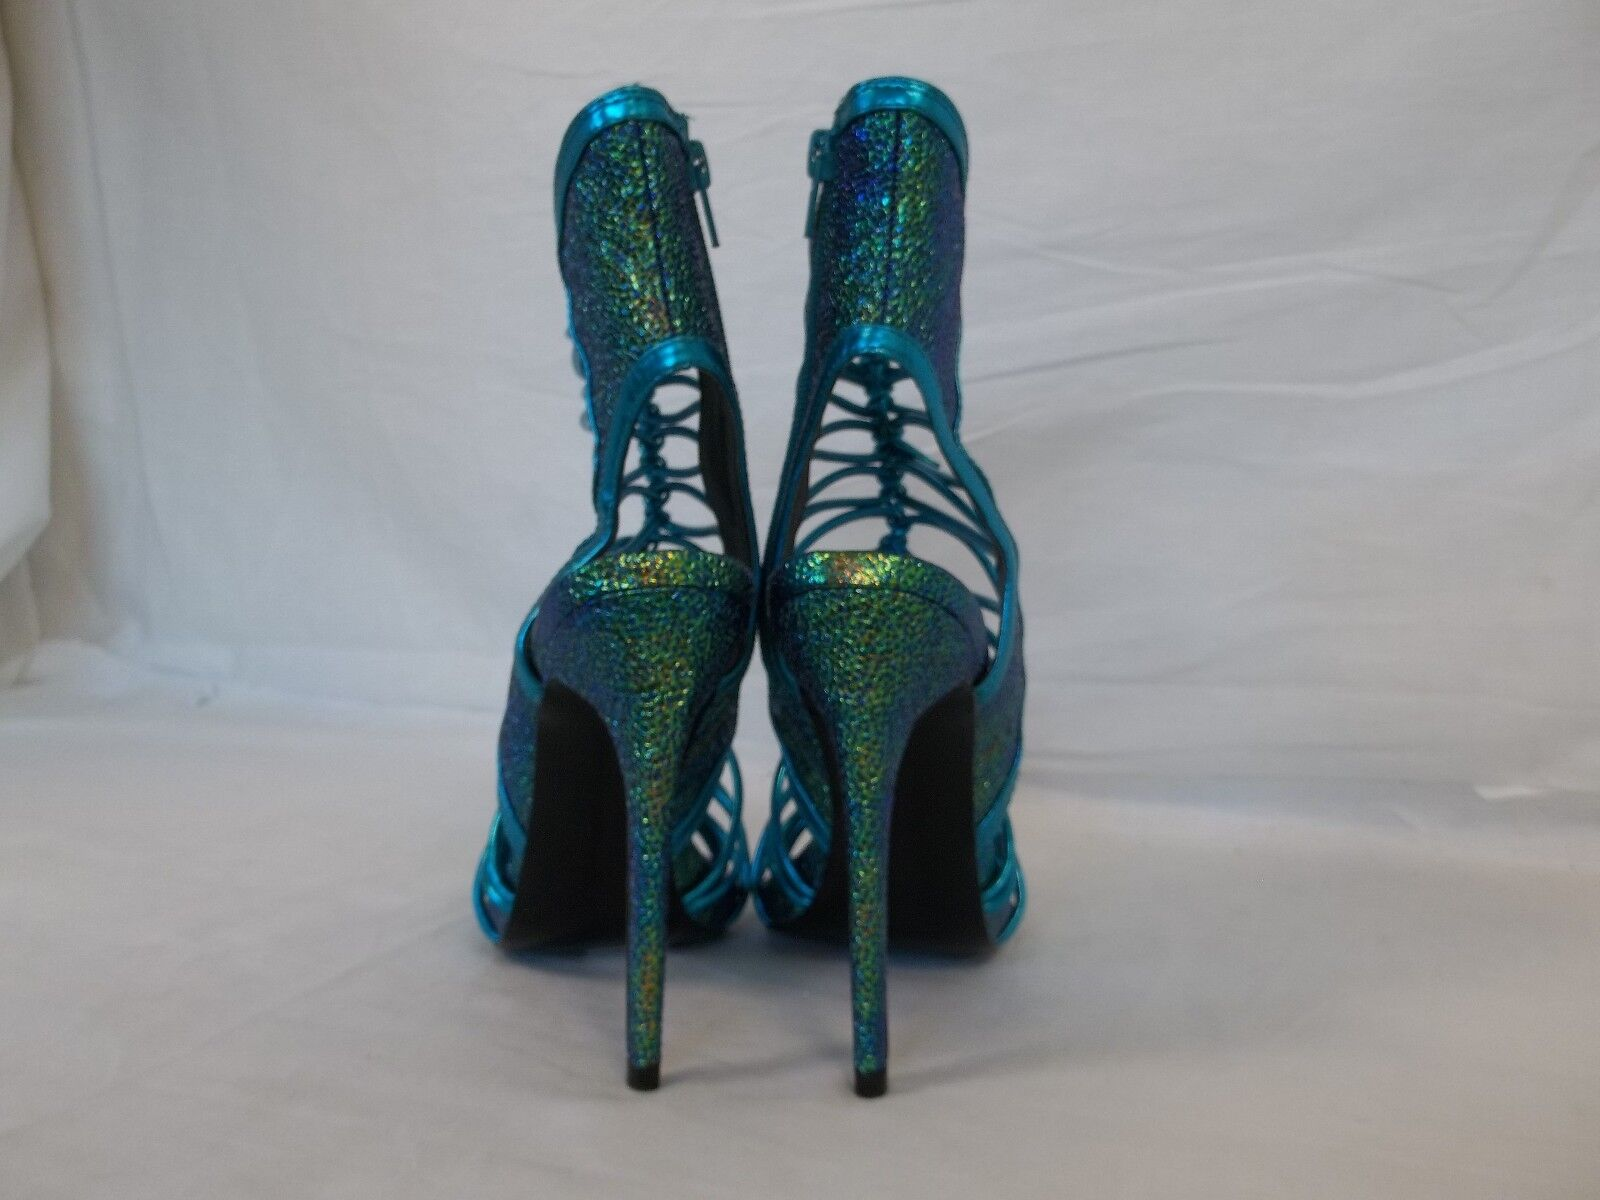 Keyshia Cole Steve Madden 8 M Movit Teal Donna Open Toe Heels New Donna Teal Shoes NWOB d6c5e1